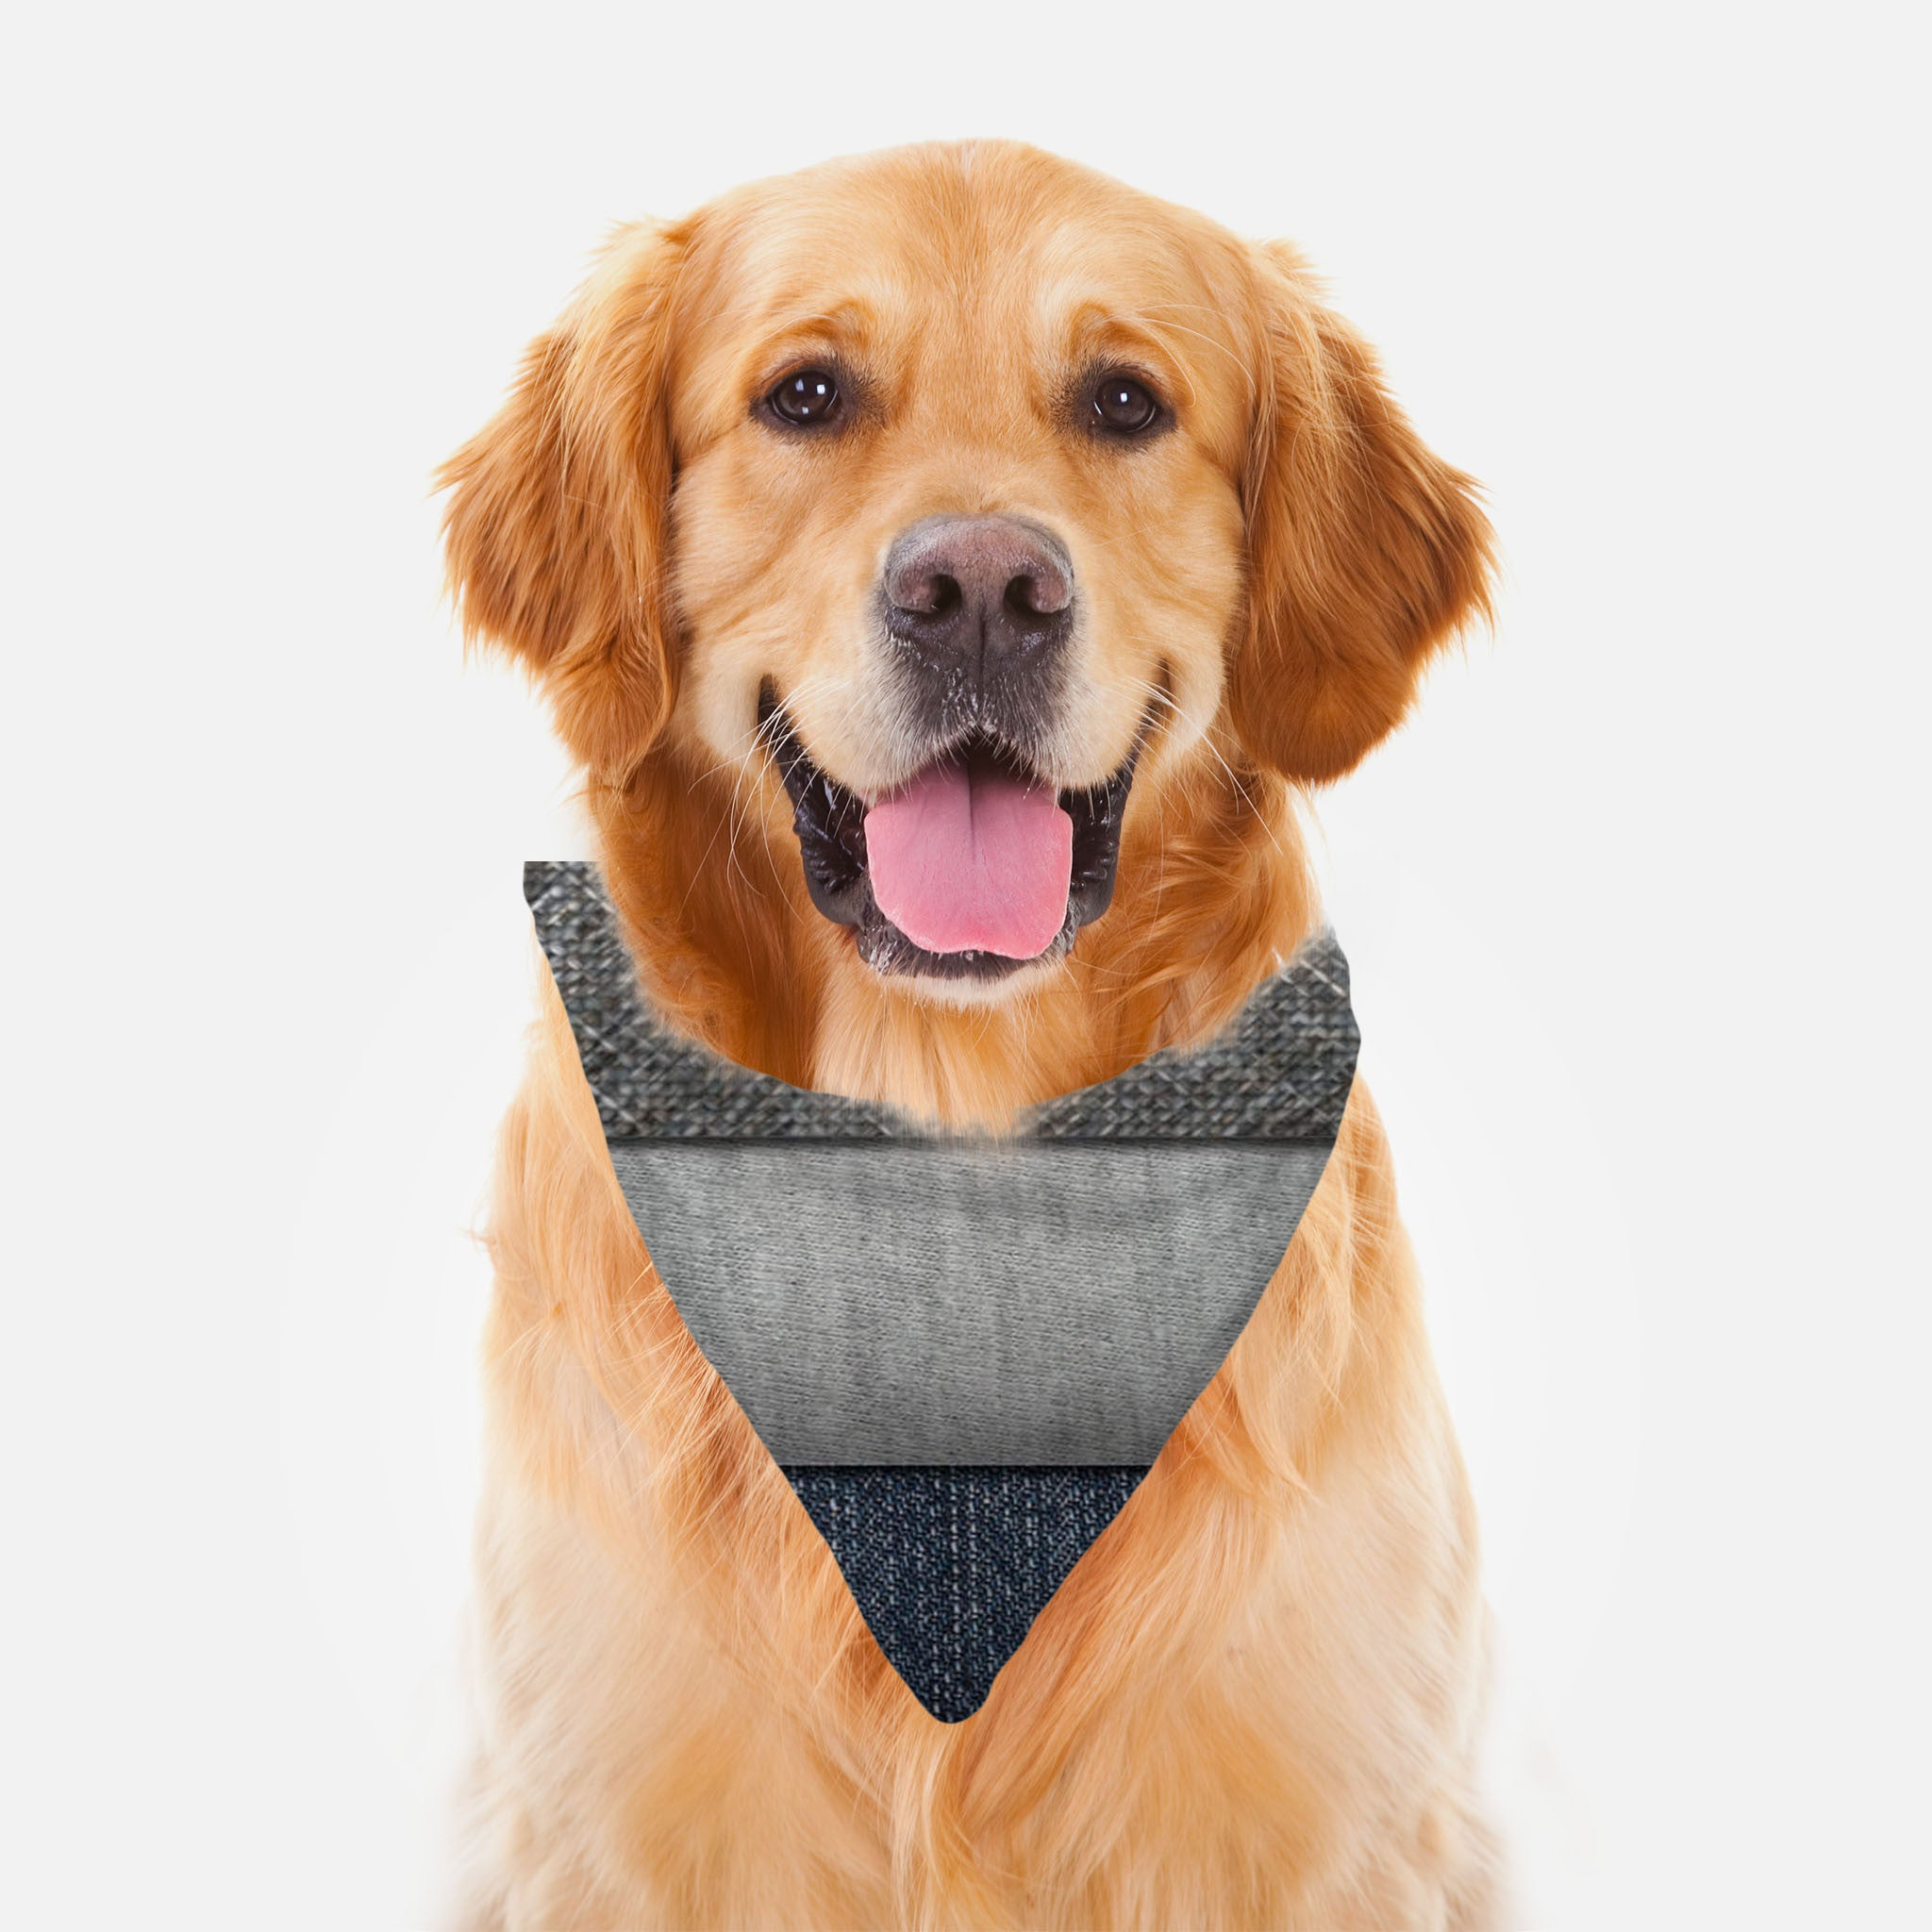 Tri Denim Ruff Riders Pet Bandana by JoJo (1170034-RR-B)